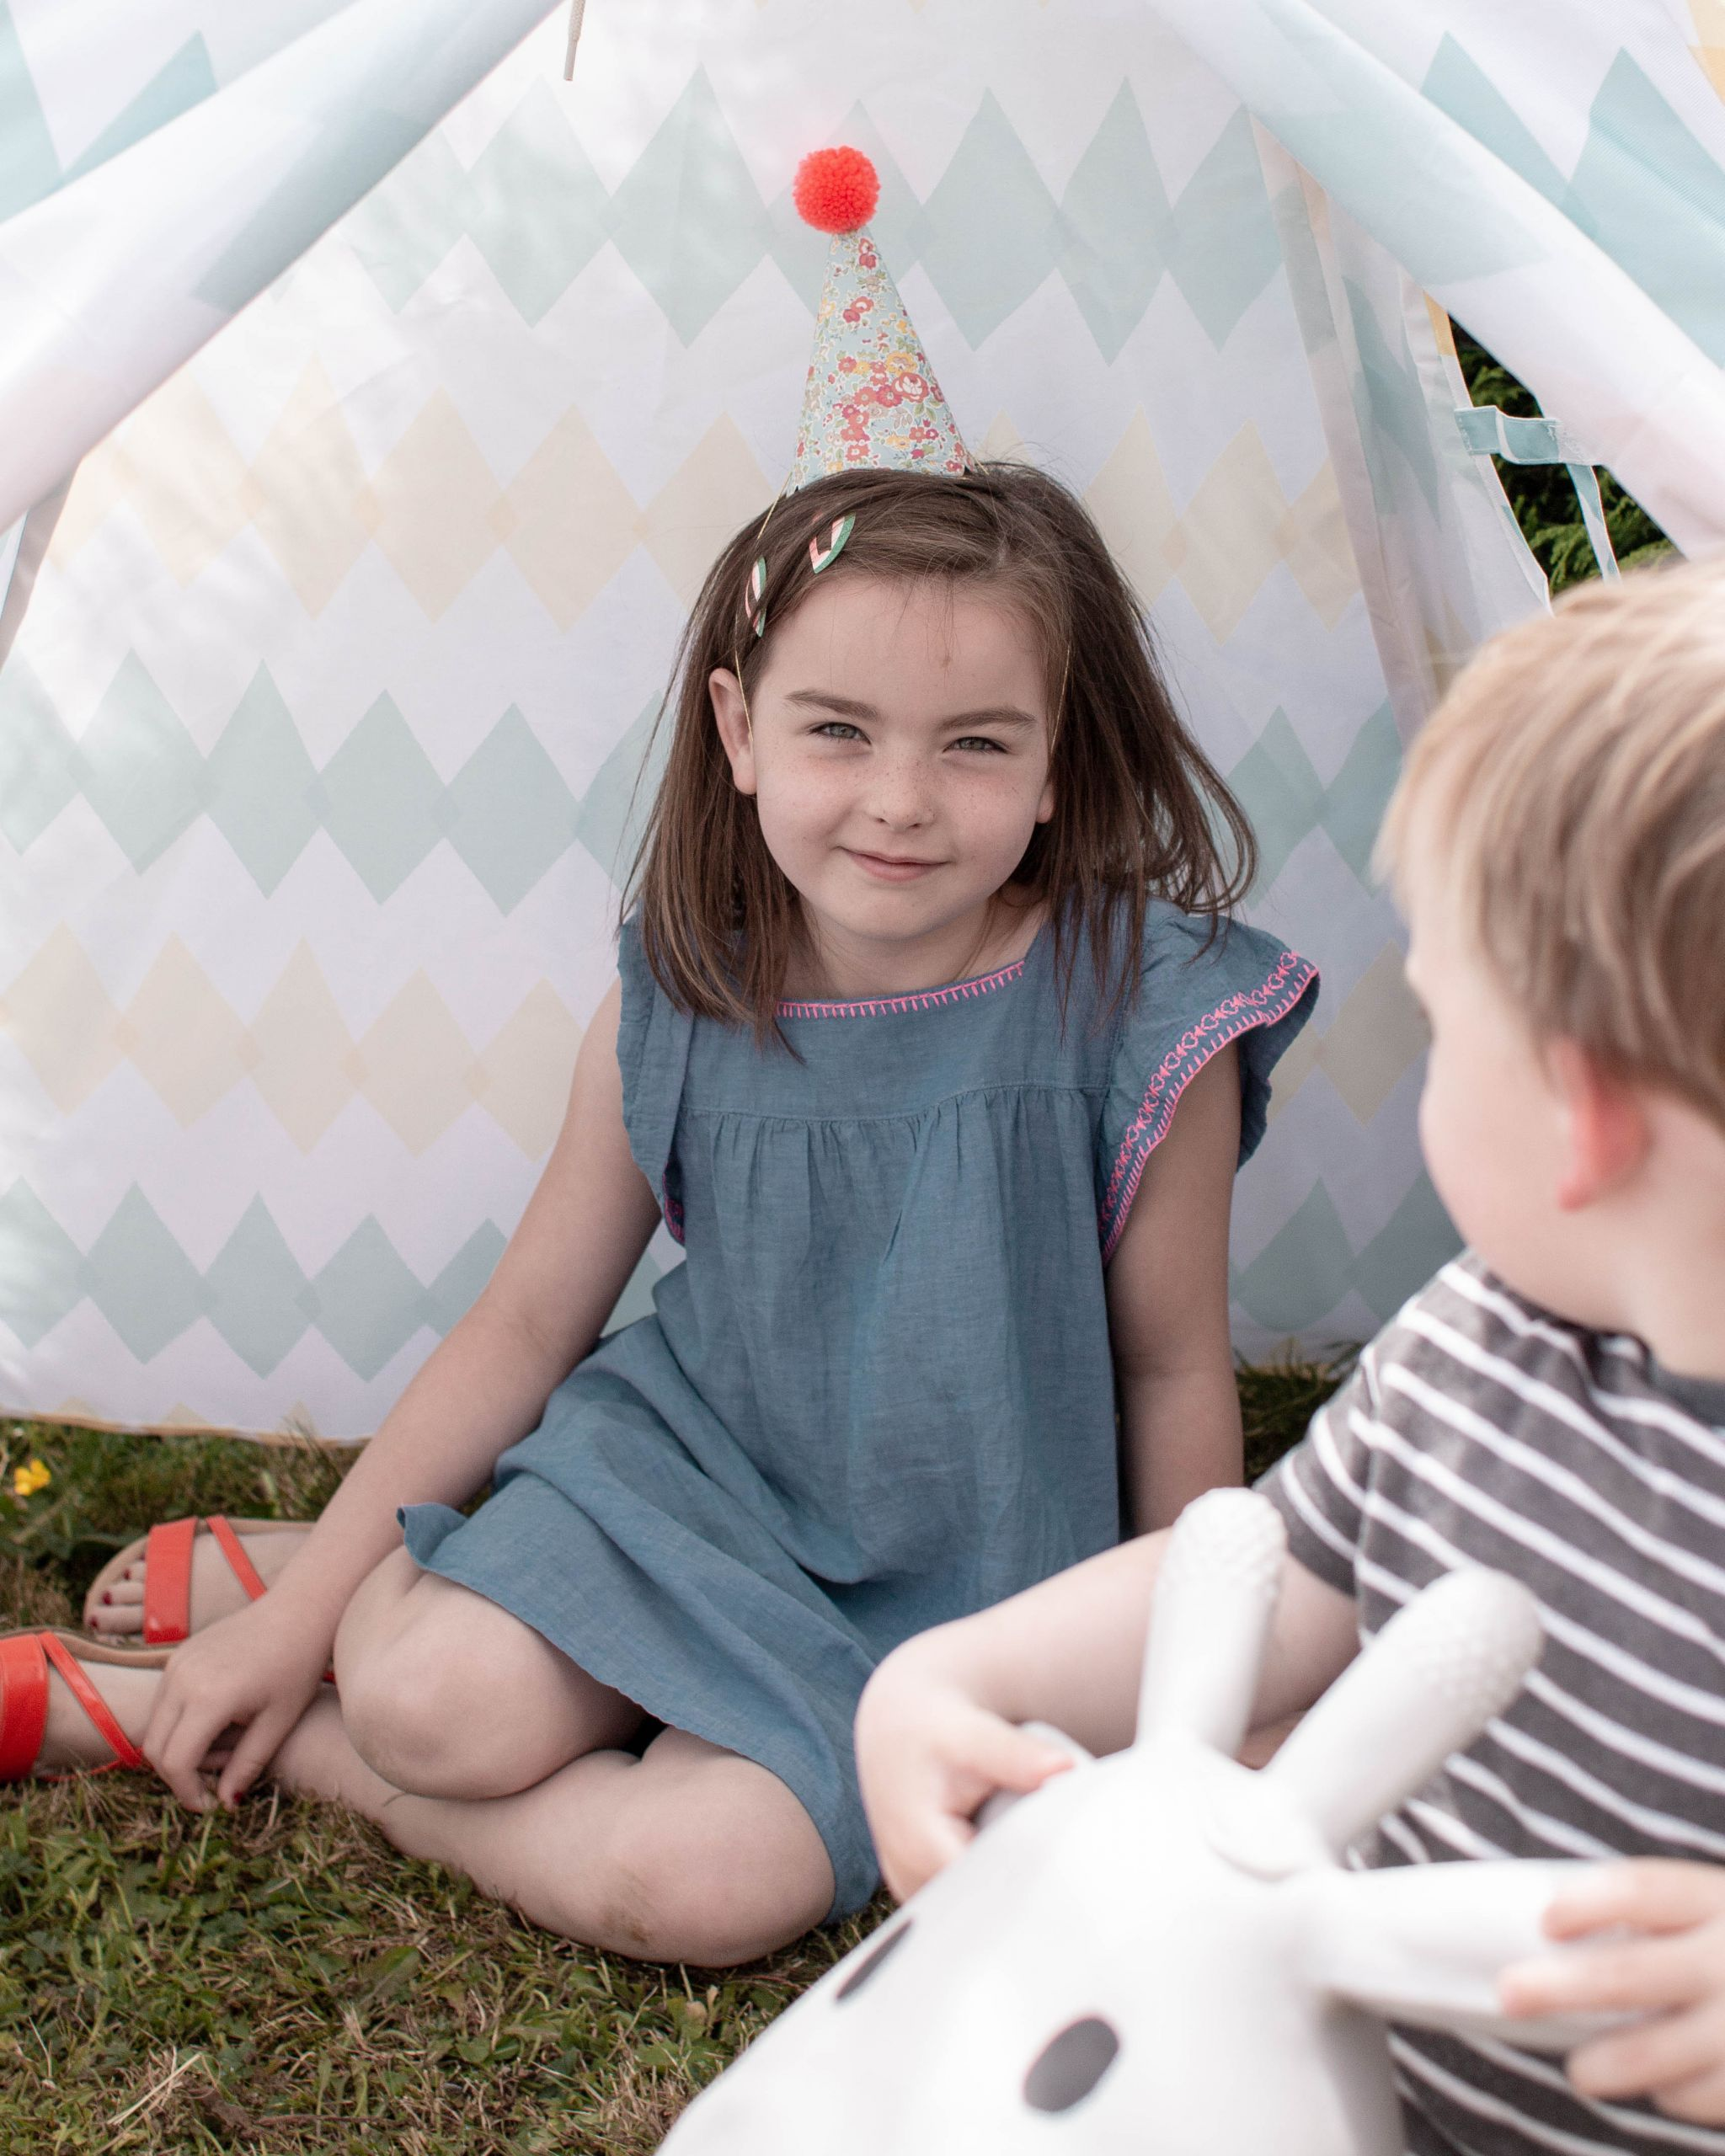 hannah layford child photography shoot portraits birthday party twins girl in party hat